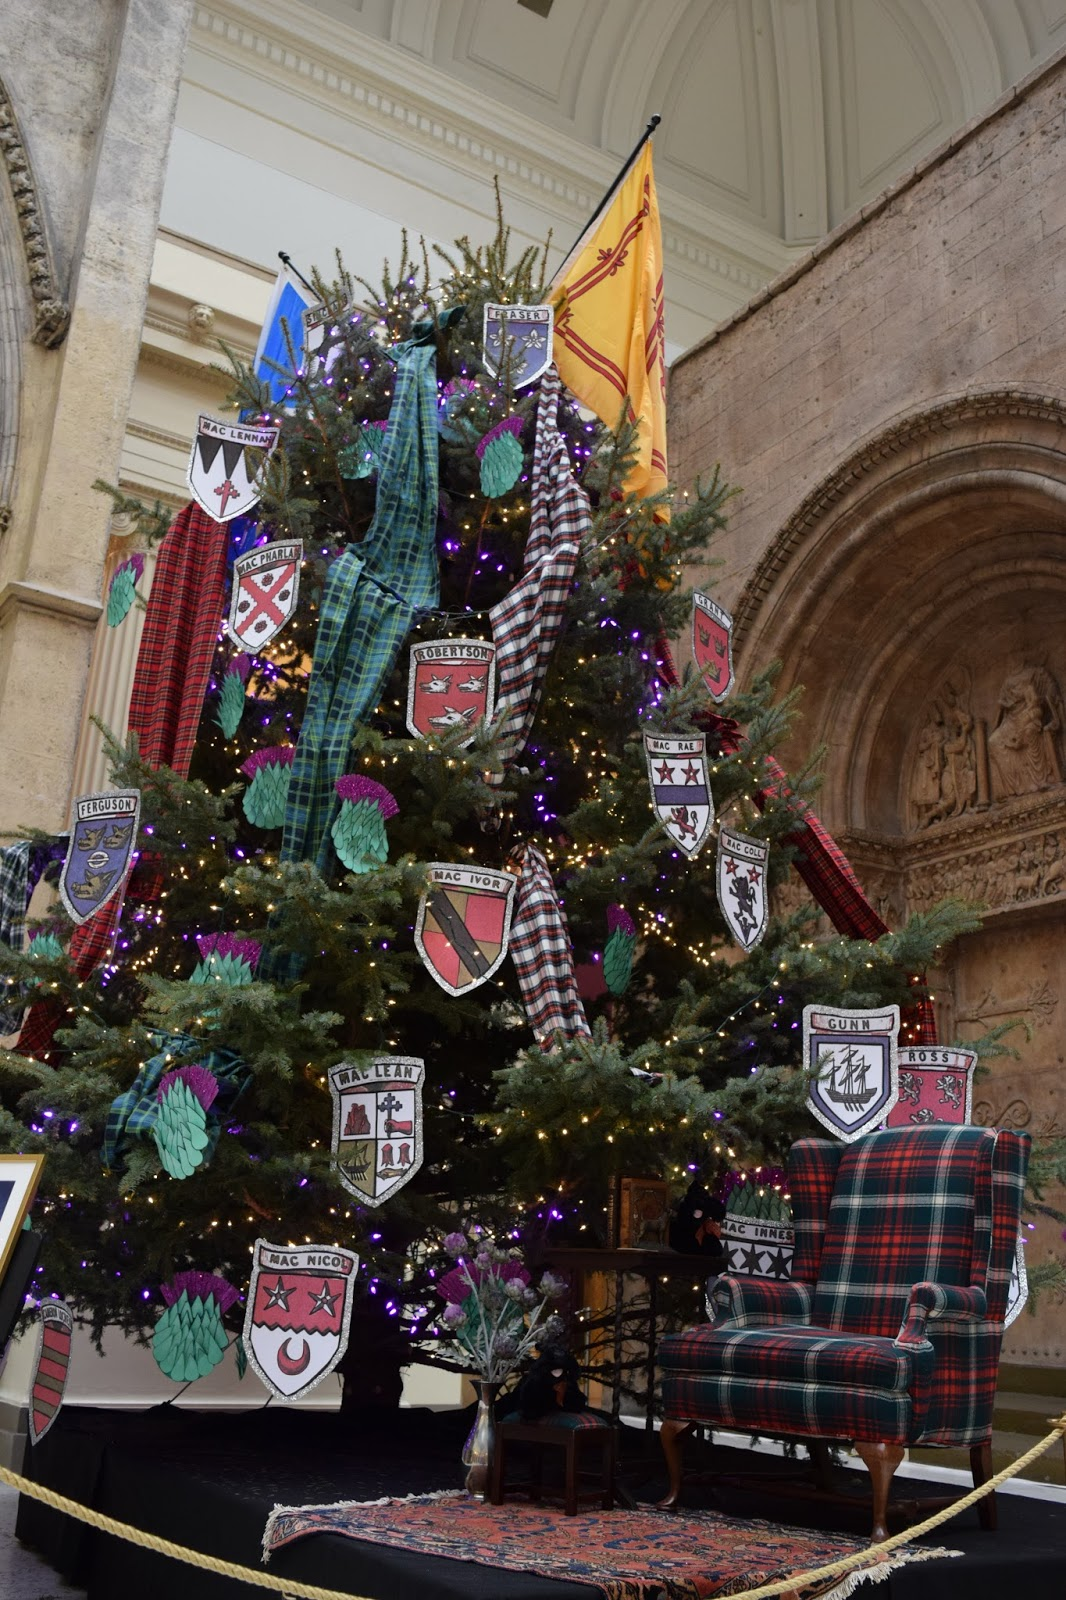 A Tribute To The Scottish Clans Decked With Shields And Clan Tartans The 20 Foot Conifer Shows Scottish Pride In Its Truest Form